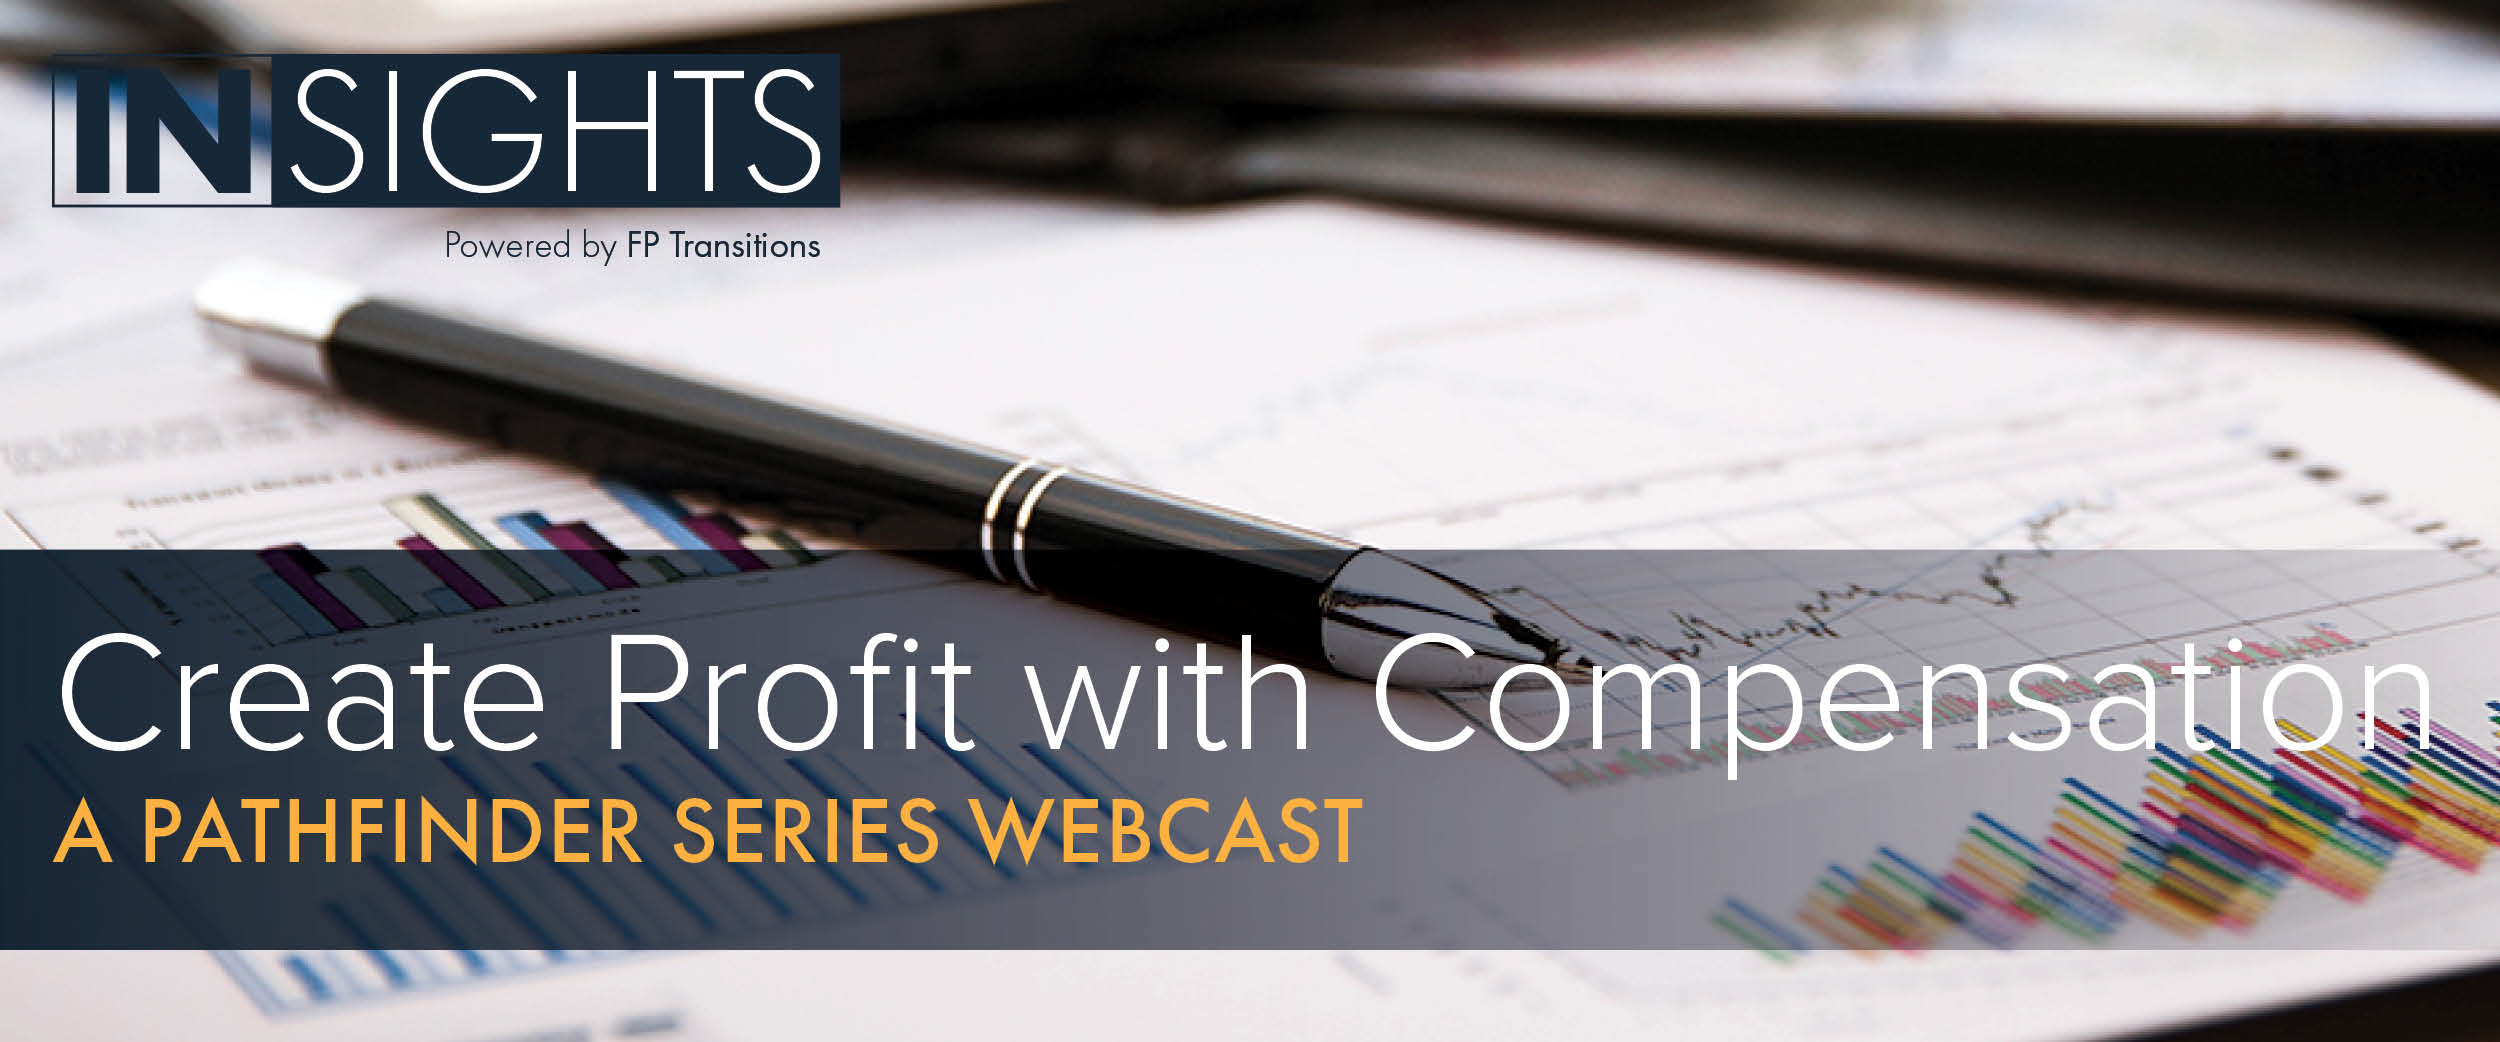 Create Profit with Compensation [Watch Link]